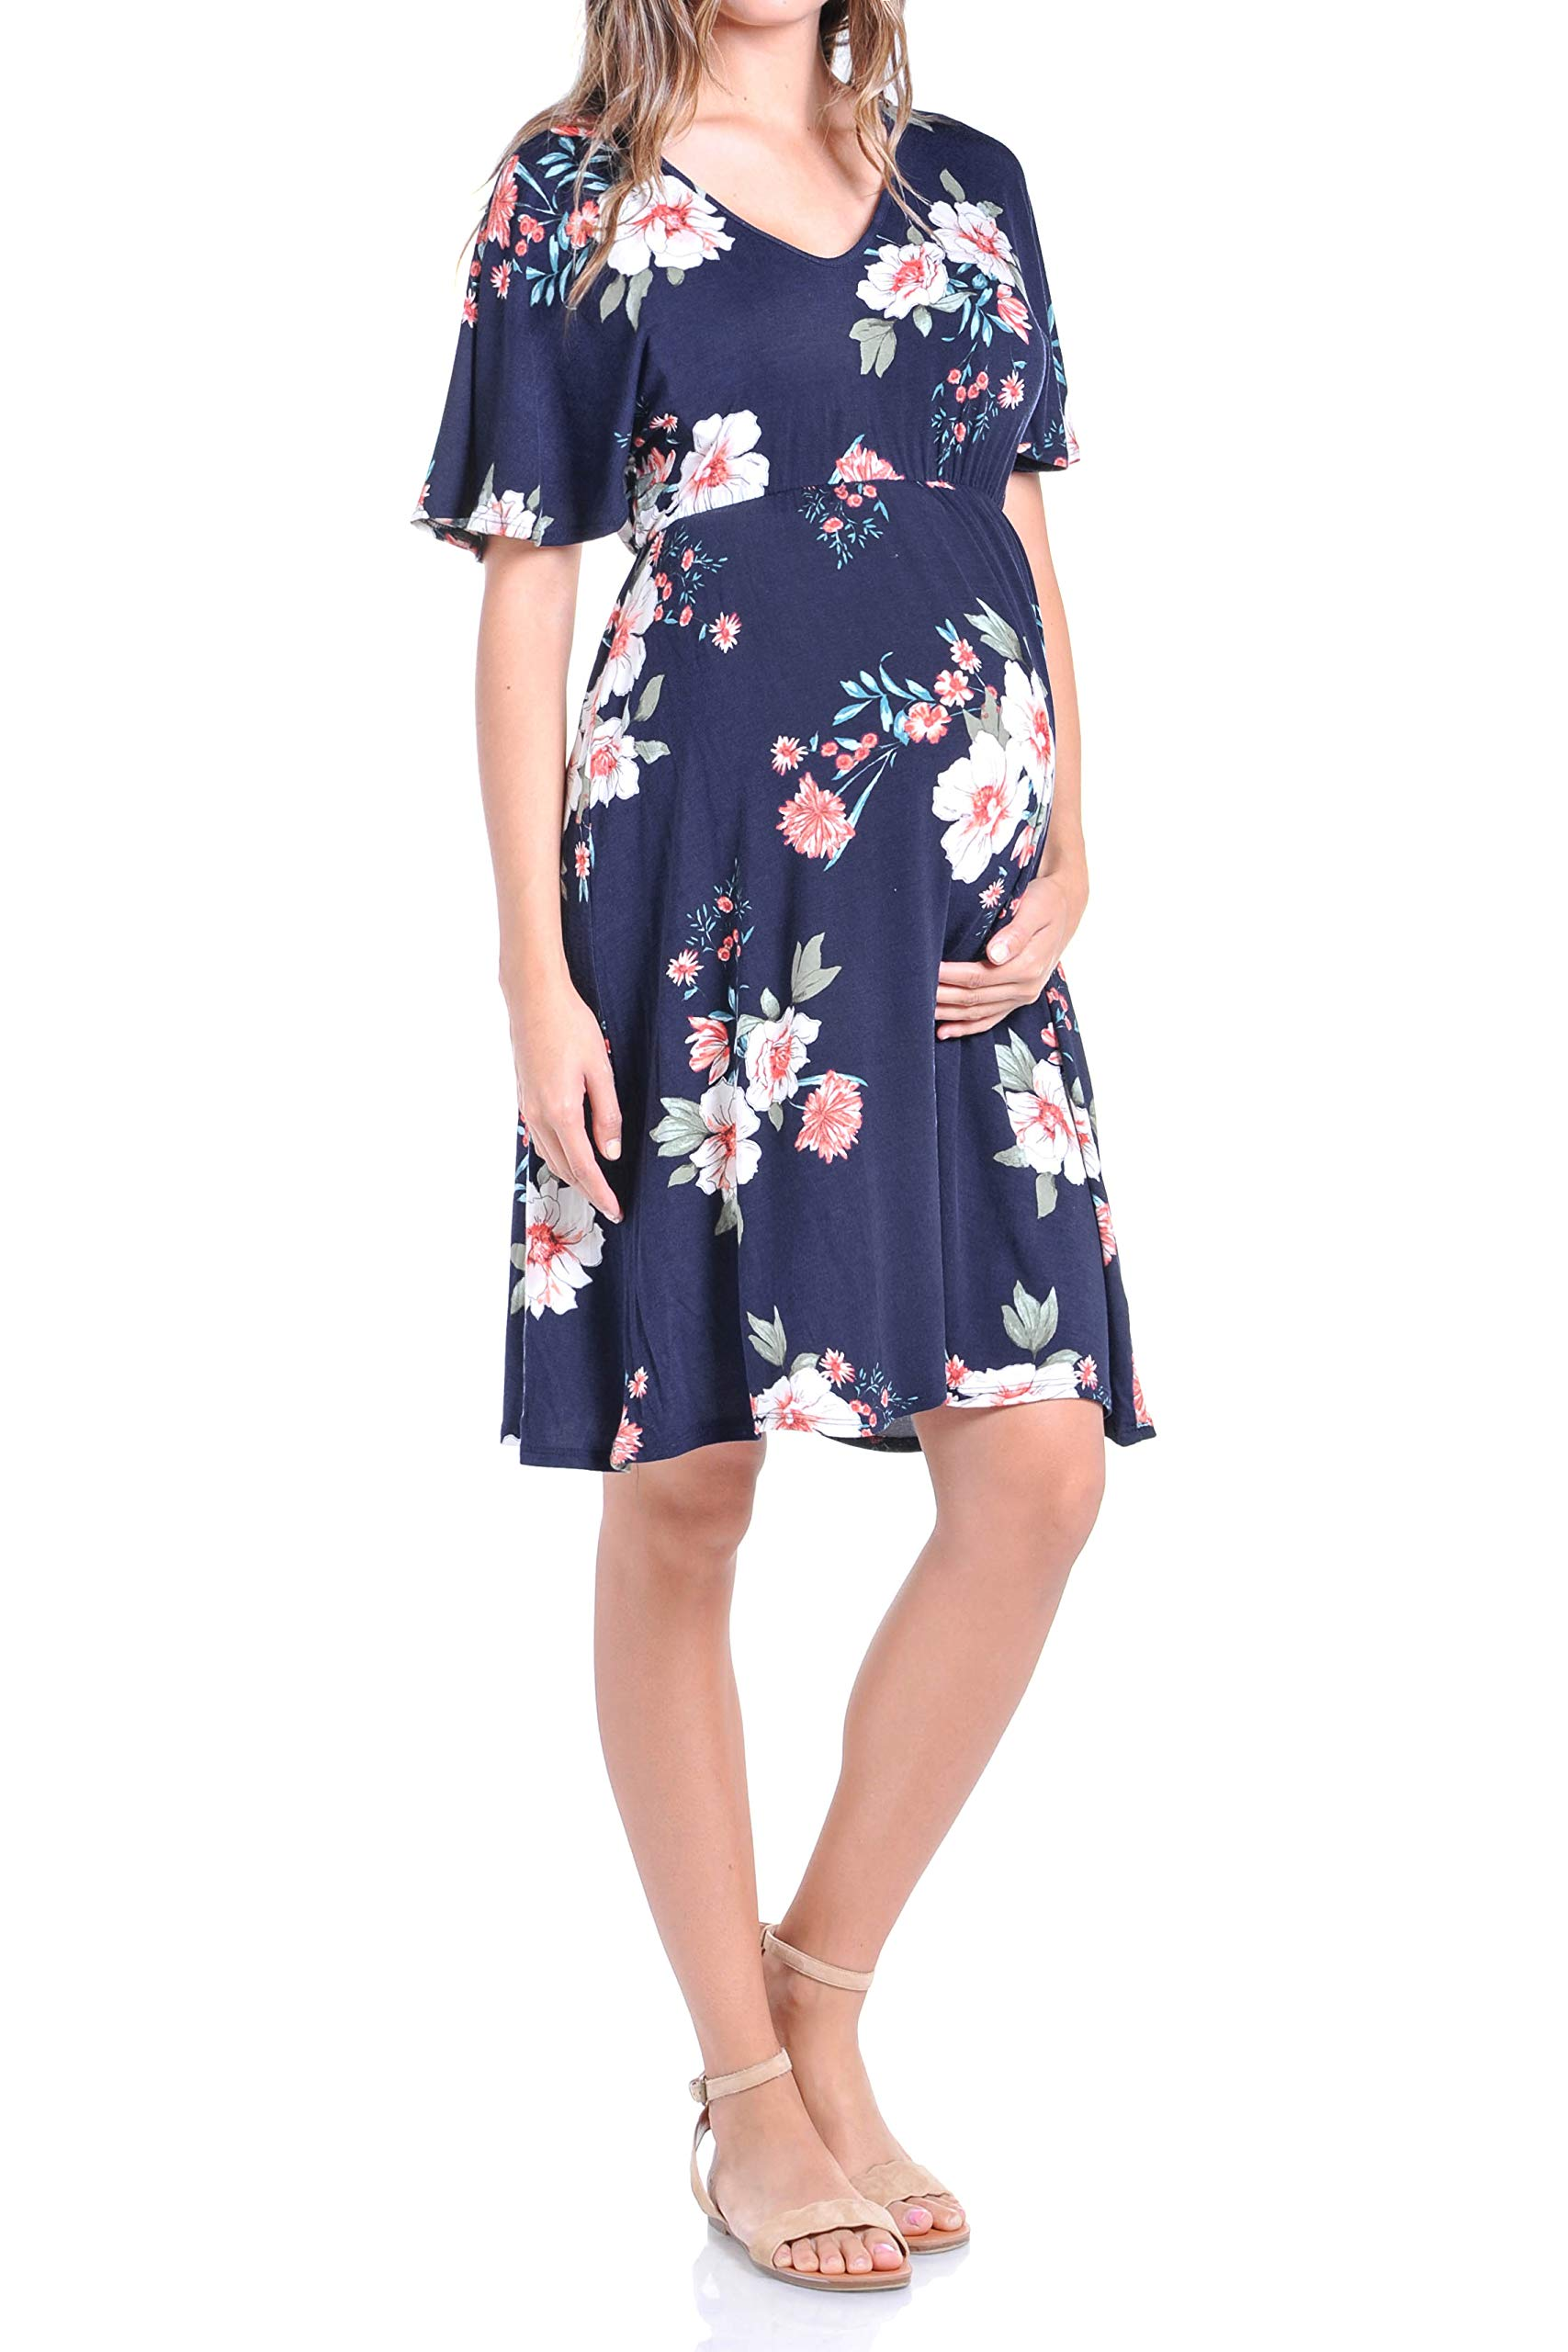 Beachcoco Women's Maternity Comfortable Babydoll Kimono Sleeve Flower Printed Dress (M, Navy/Ivory Flower)